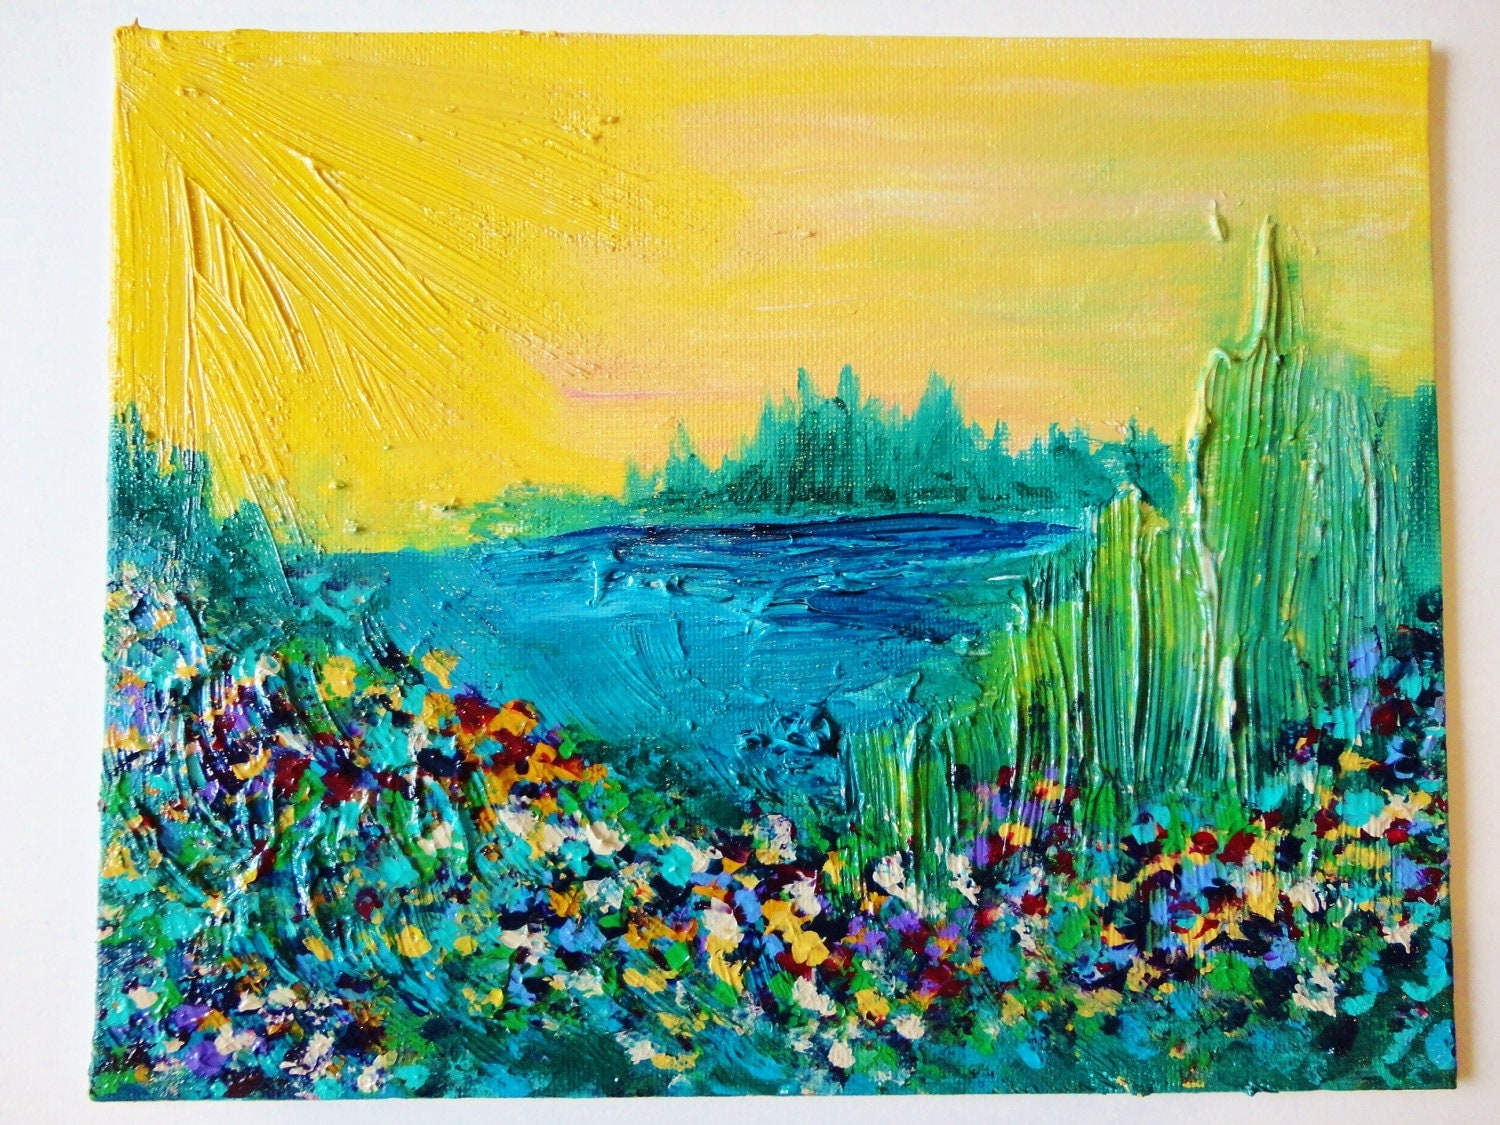 SALE - OOAK ACRYLIC Painting, Abstract Floral Wildflowers